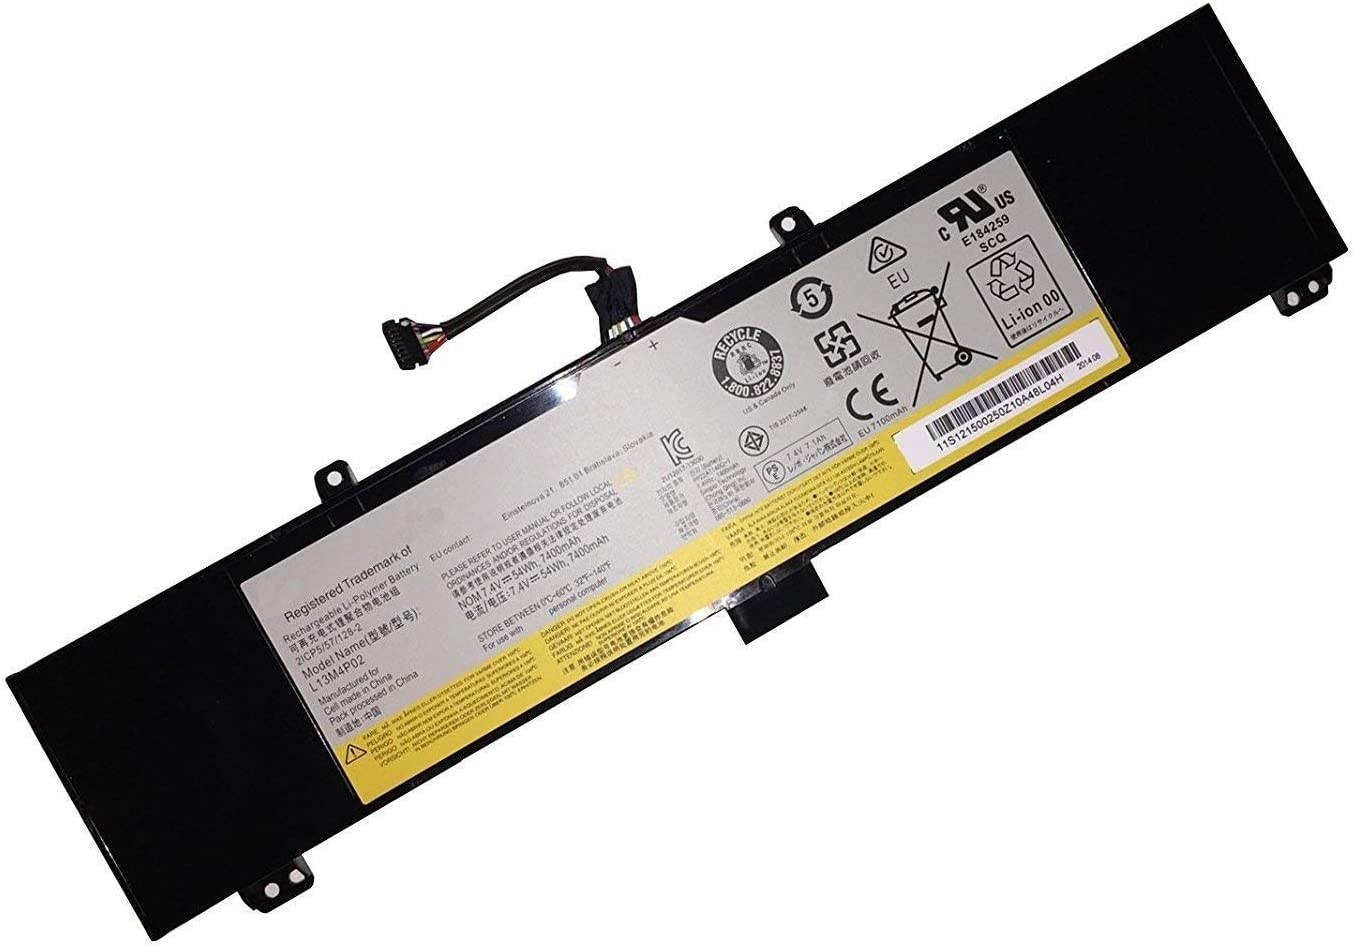 Tandirect New L13M4P02 Replacement Laptop Battery for Lenovo L13N4P01 L13M4P02,L13L4P01 Y50-70AM-IFI(R) Y50p-70-ISE Y50-70AM-IFI Y50-70AM-ISE(D) (7.4V 54Wh 7400MAH)